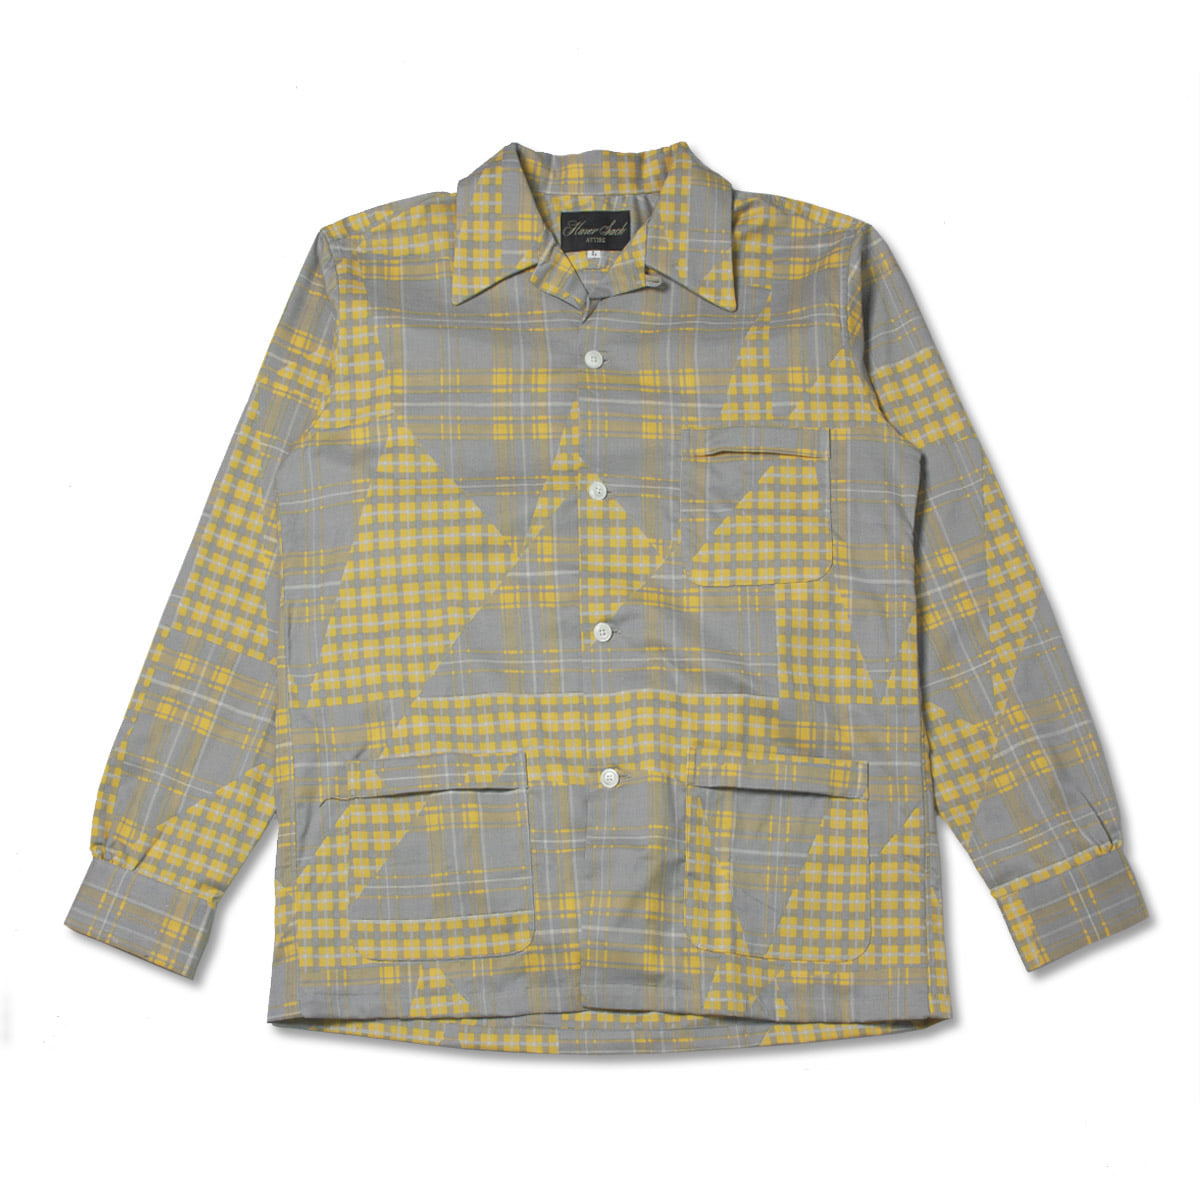 [HAVERSACK] PATCHWORK CHECK OPEN COLLAR SHIRT 'GREY / YELLOW'